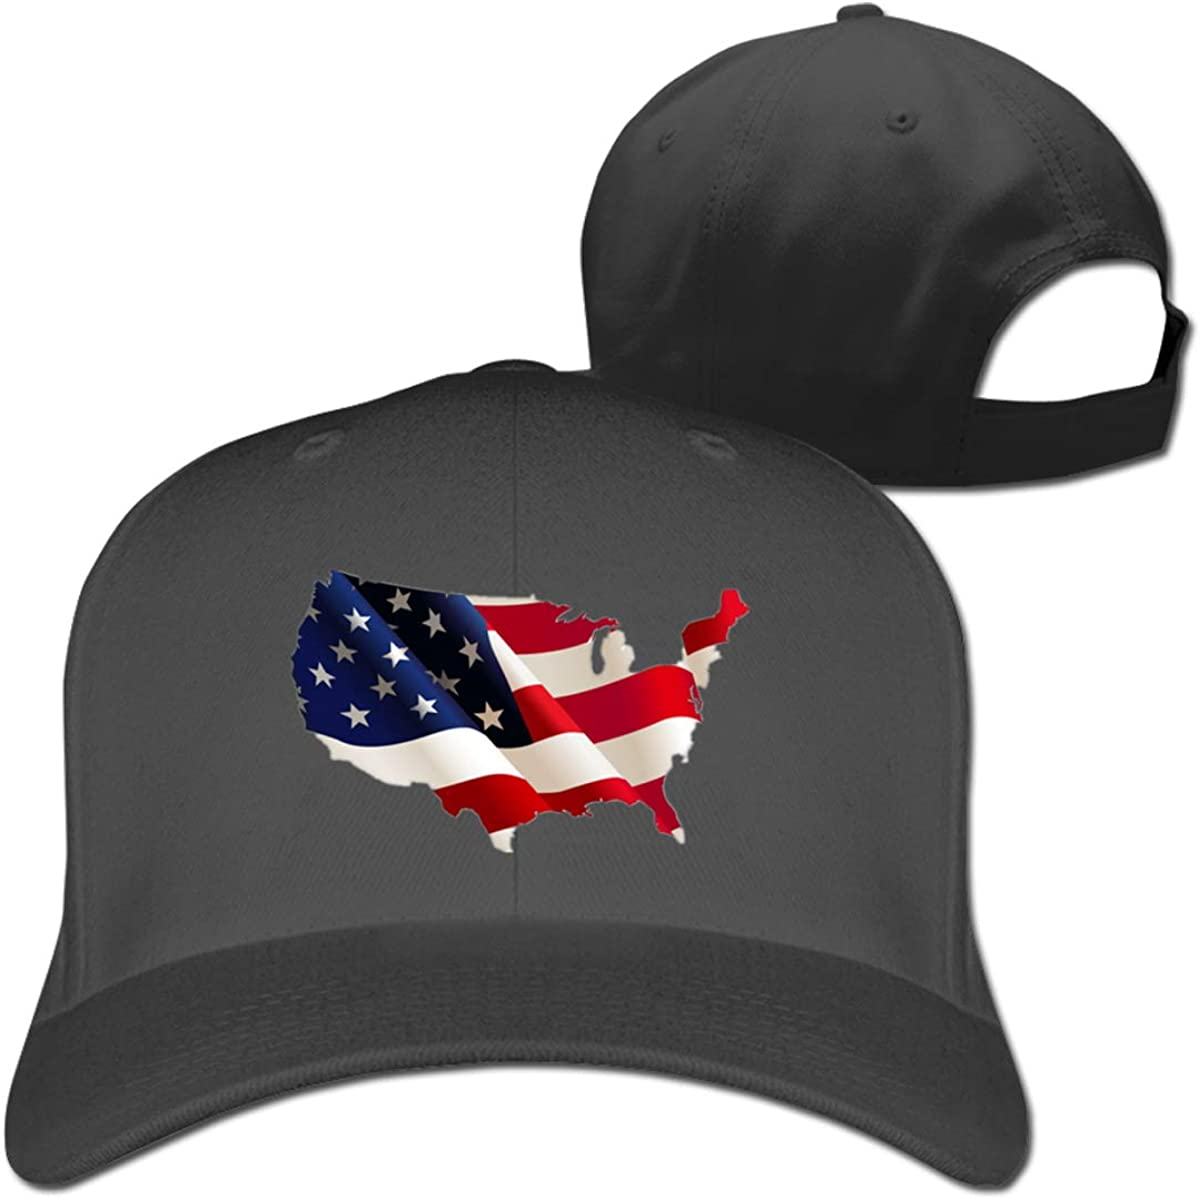 USA Flag Map Classic Adjustable Cotton Baseball Caps Trucker Driver Hat Outdoor Cap Fitted Hats Dad Hat Black